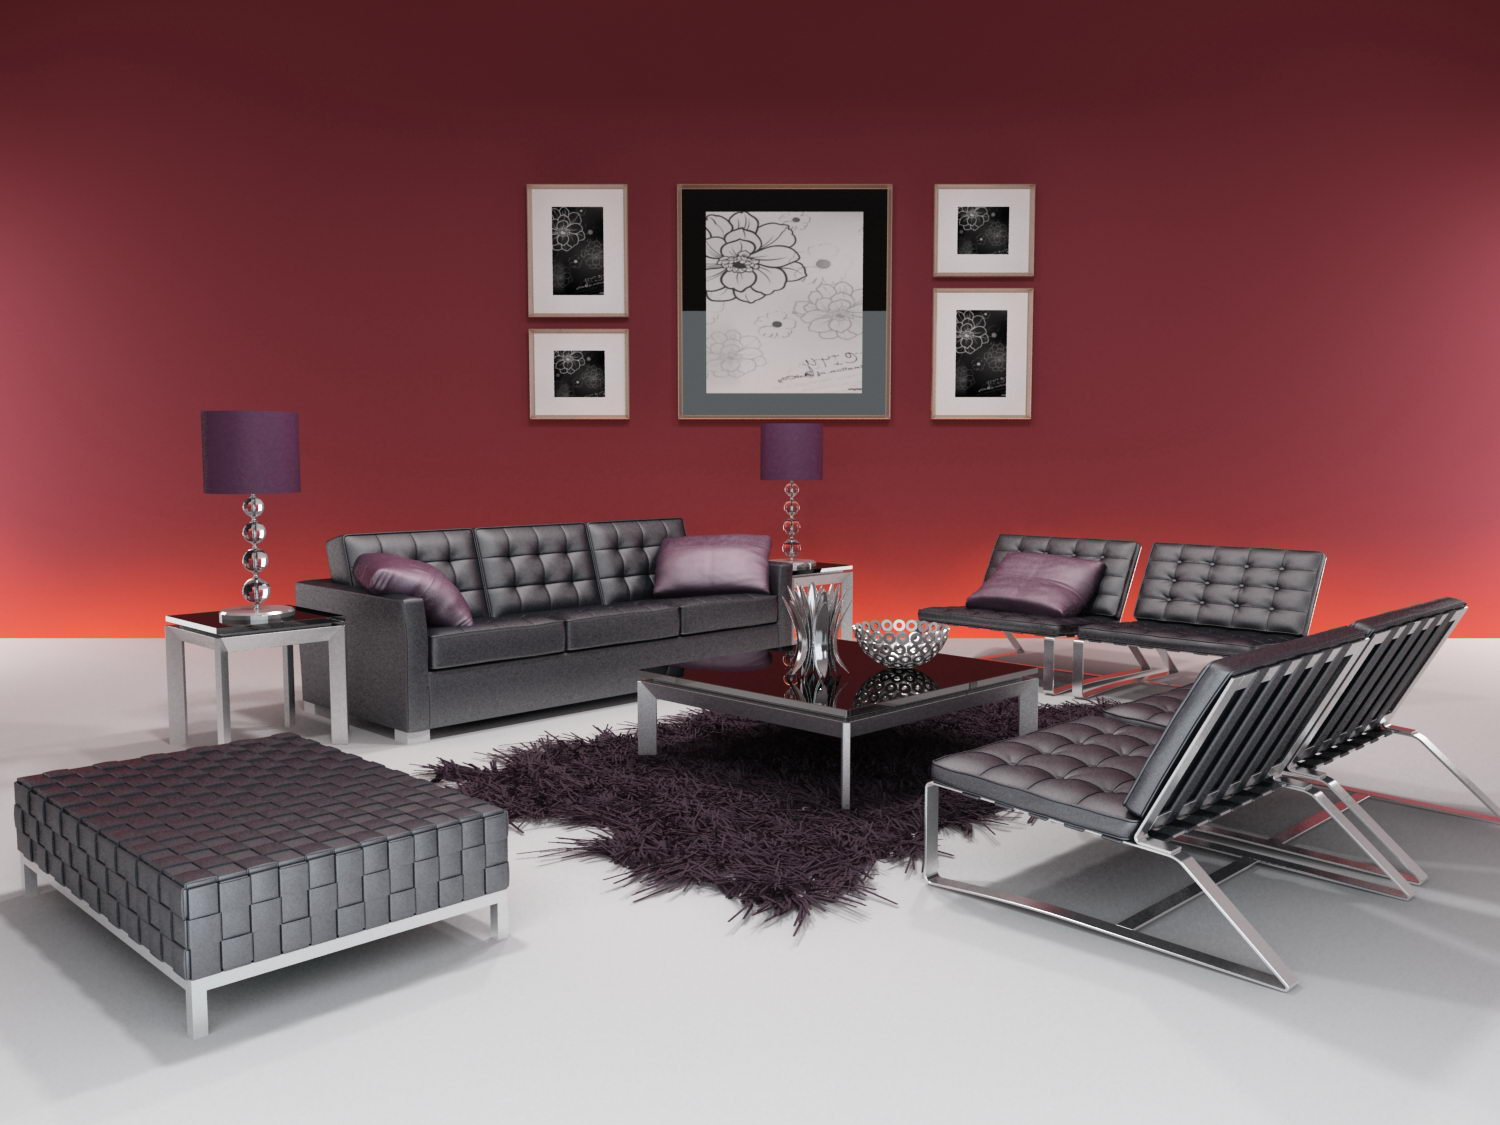 Ultra-modern Minimalist Sofa 3D Model (including Materials